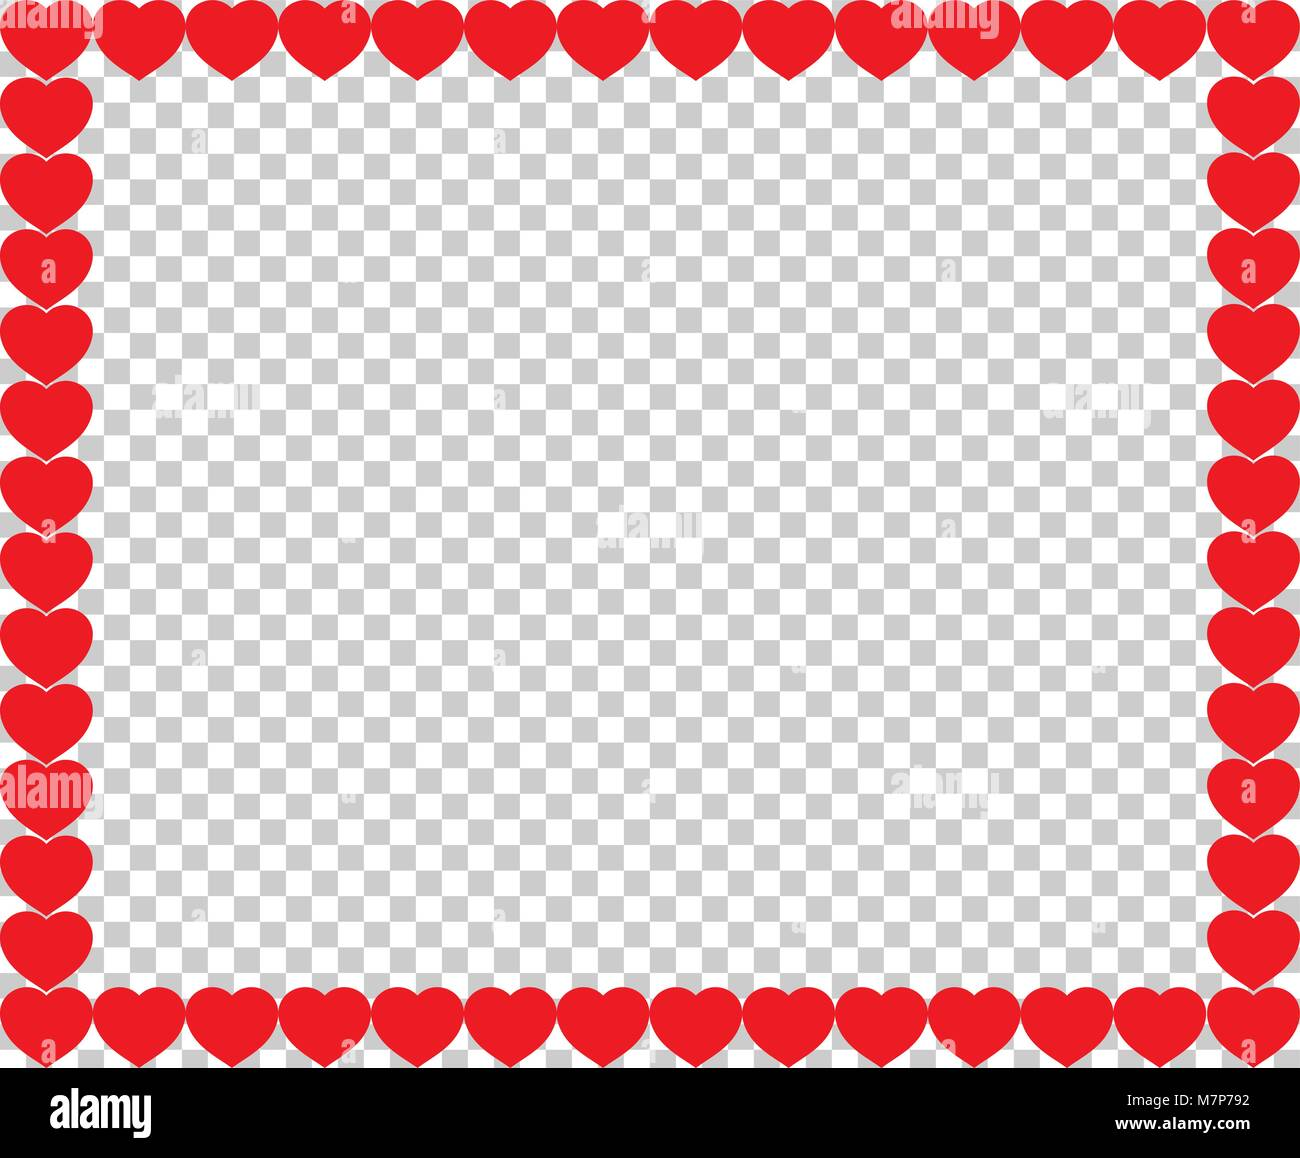 Cute Red Hearts Border With Space For Text Or Image Inside Isolated On Transparent Background Vector Full Framed Love Valentines Wedding Template